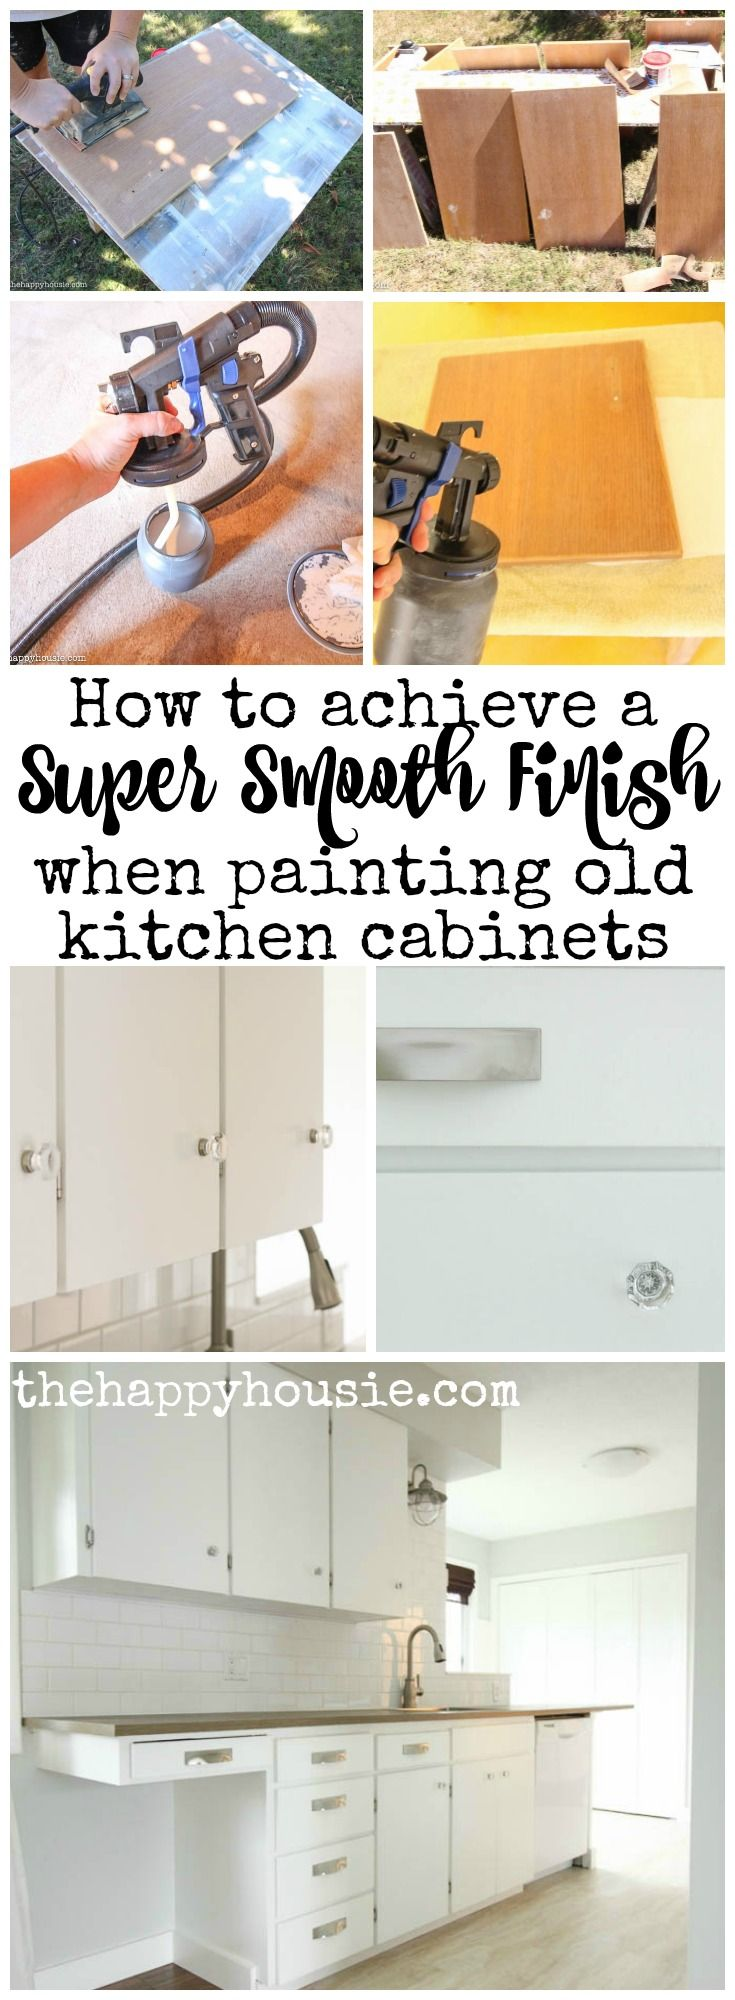 How To Achieve A Super Smooth Finish When Painting Old Kitchen Cabinets The Happy Housie Old Kitchen Cabinets Cheap Kitchen Cabinets Best Kitchen Cabinets